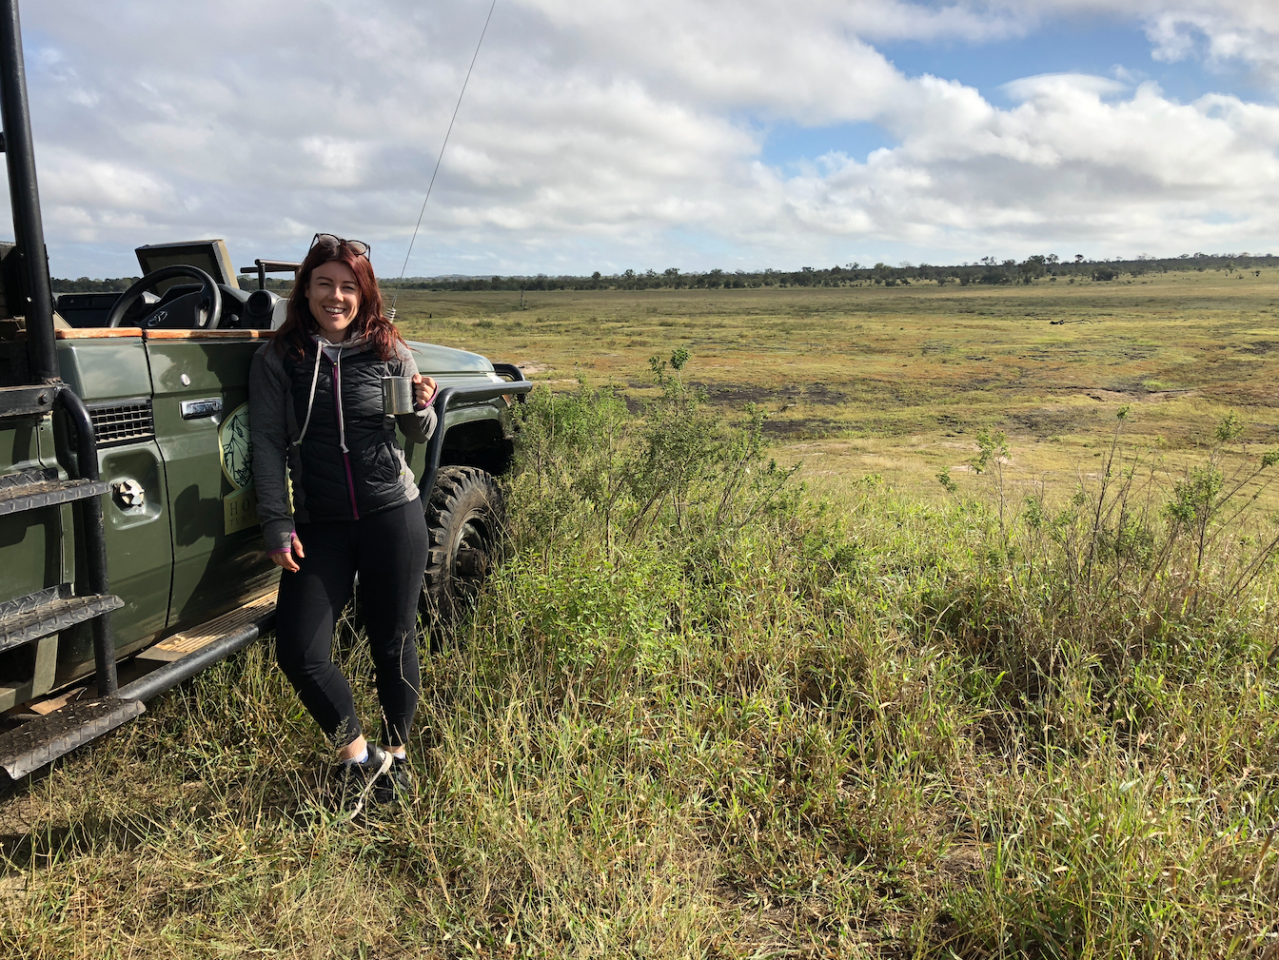 <p>Going on safari in South Africa has got to be one of those 'bucket list' destinations.<br />But for me, what I thought would simply be an amazing holiday turned out to be a life-changing experience.<br />Source: Supplied </p>